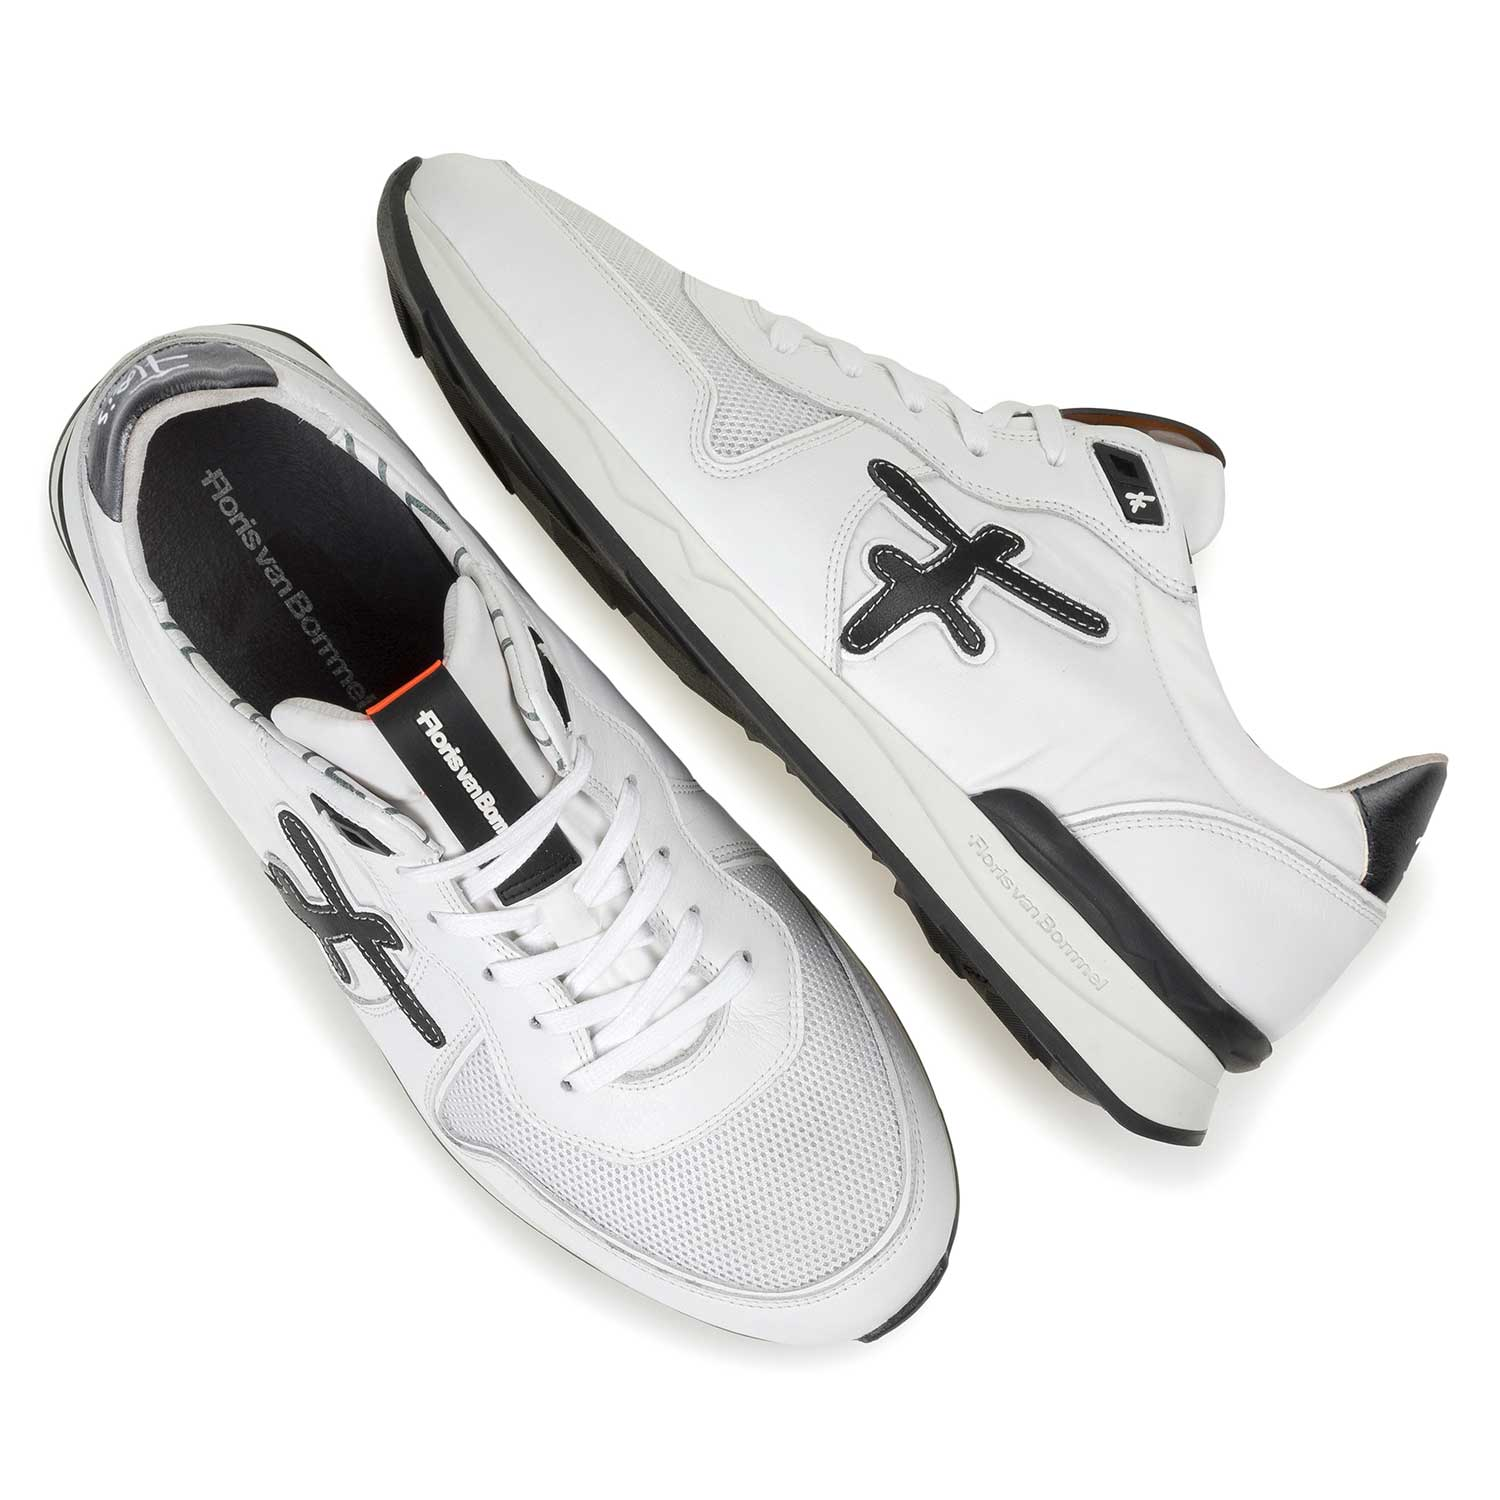 16246/09 - White leather sneaker with textile patches